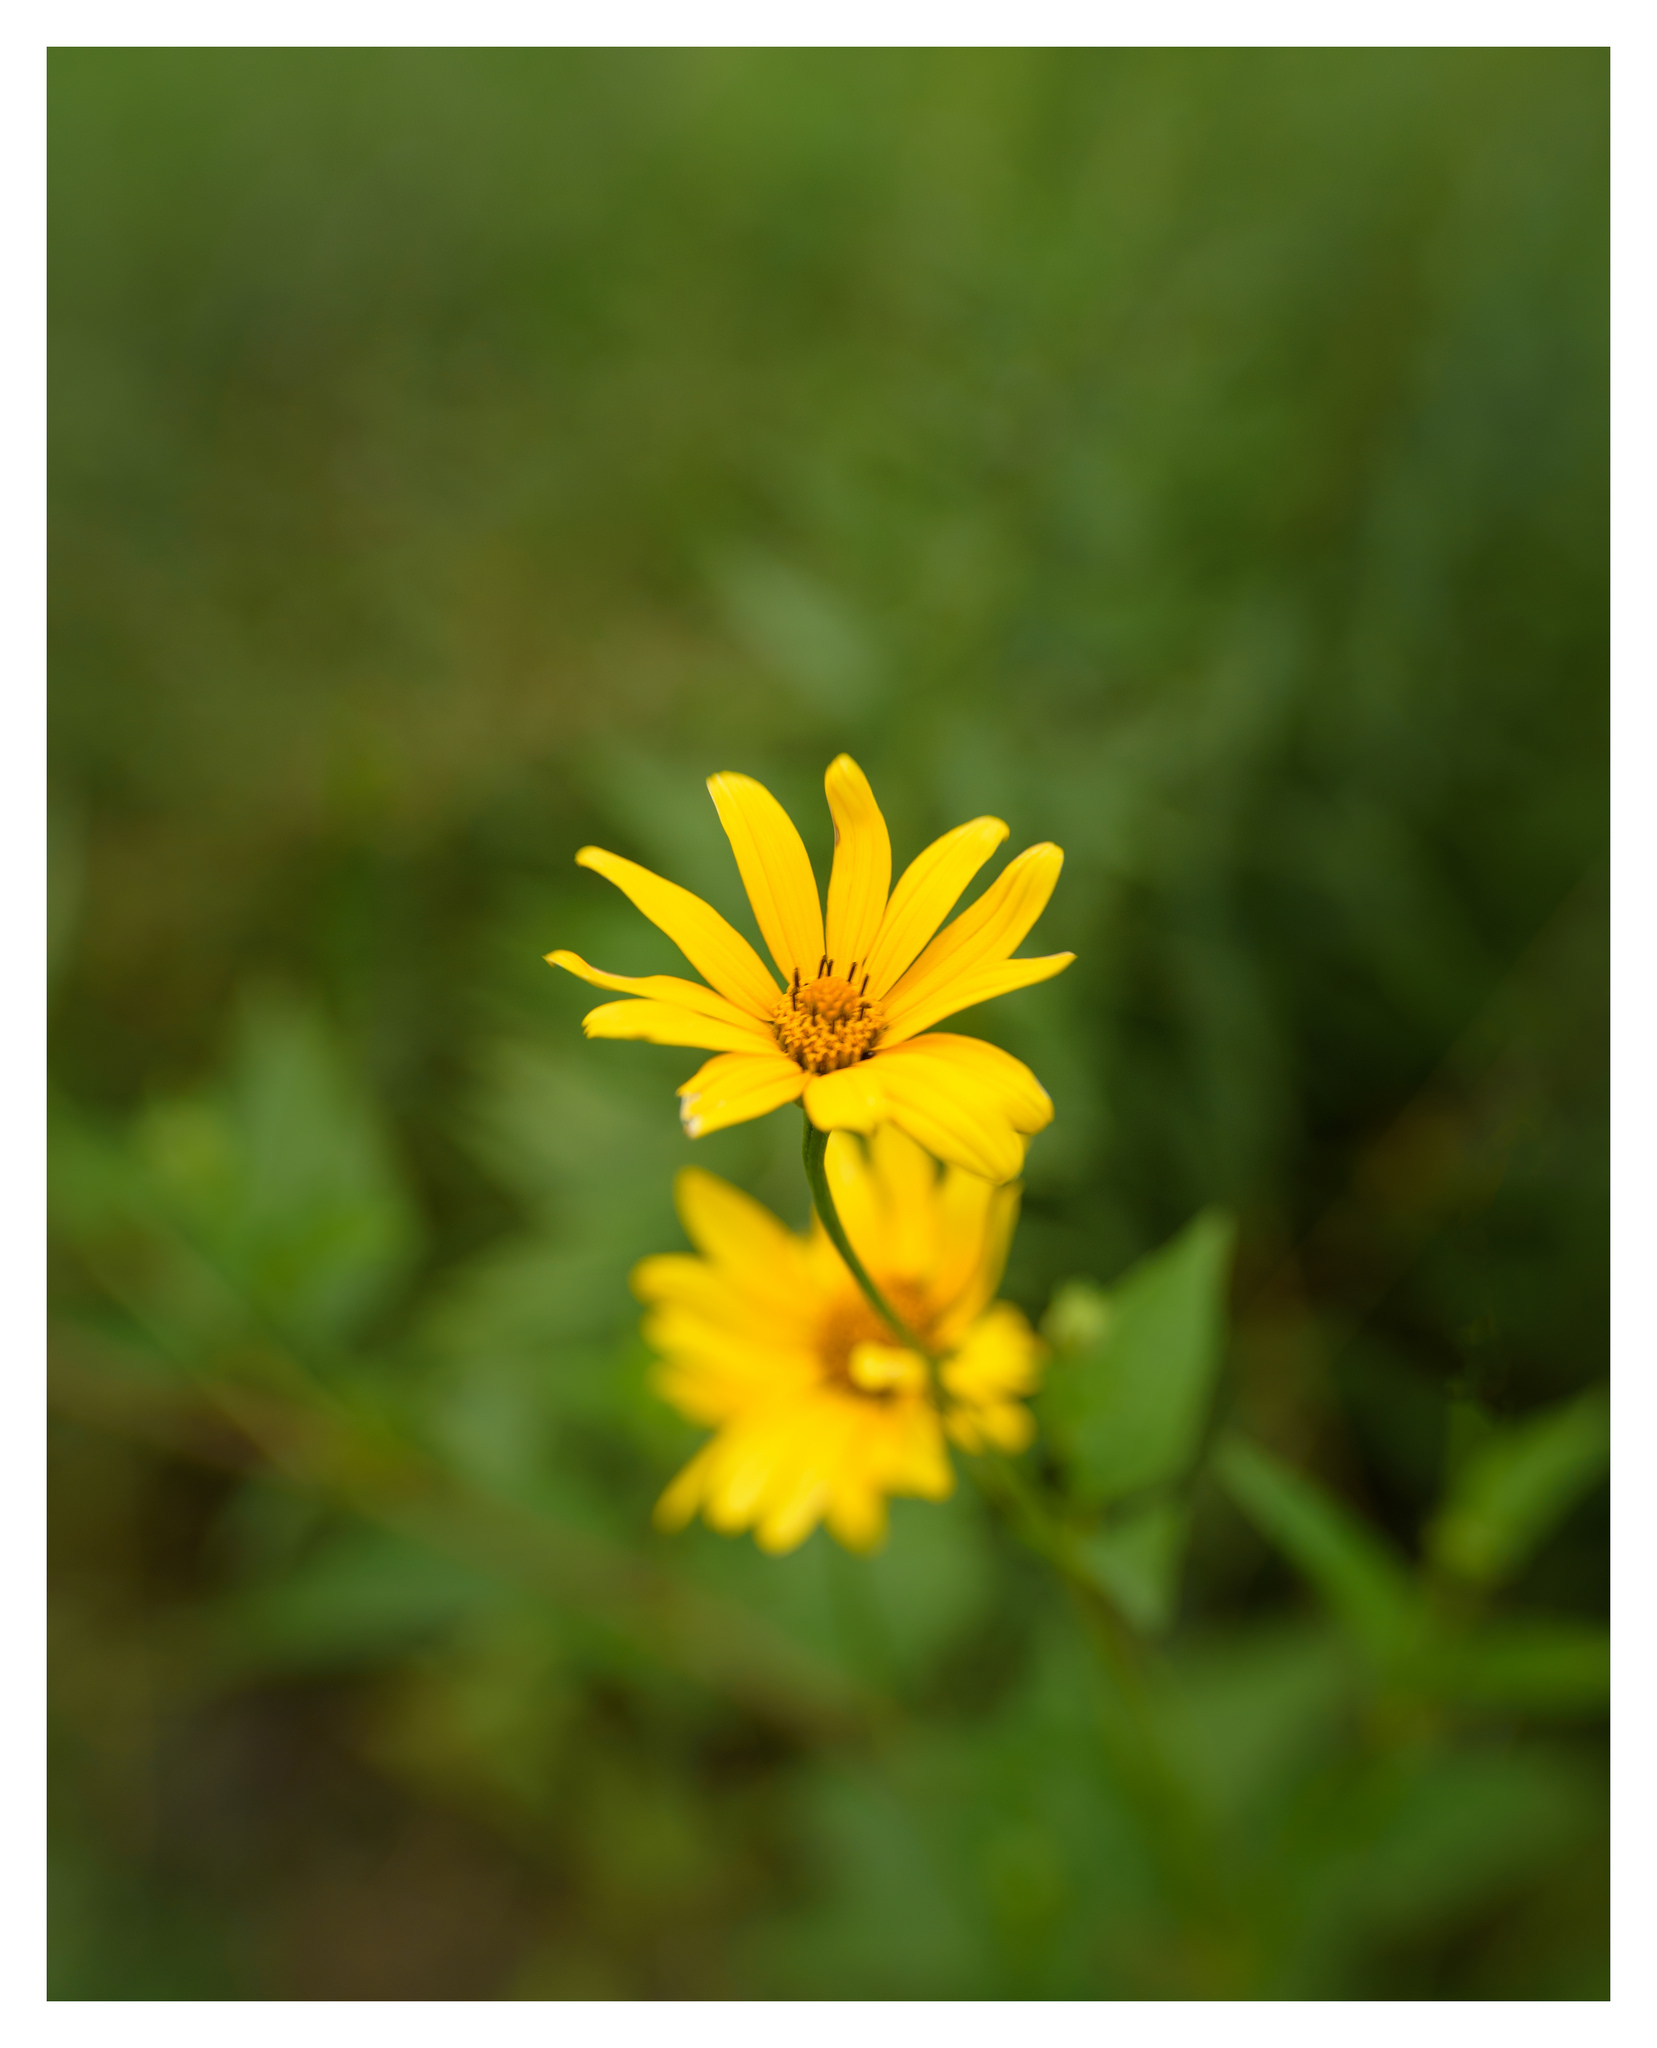 Unknown Flower at Cox Arboretum - Nikon D750 w/Lensbaby Sol 45 lens